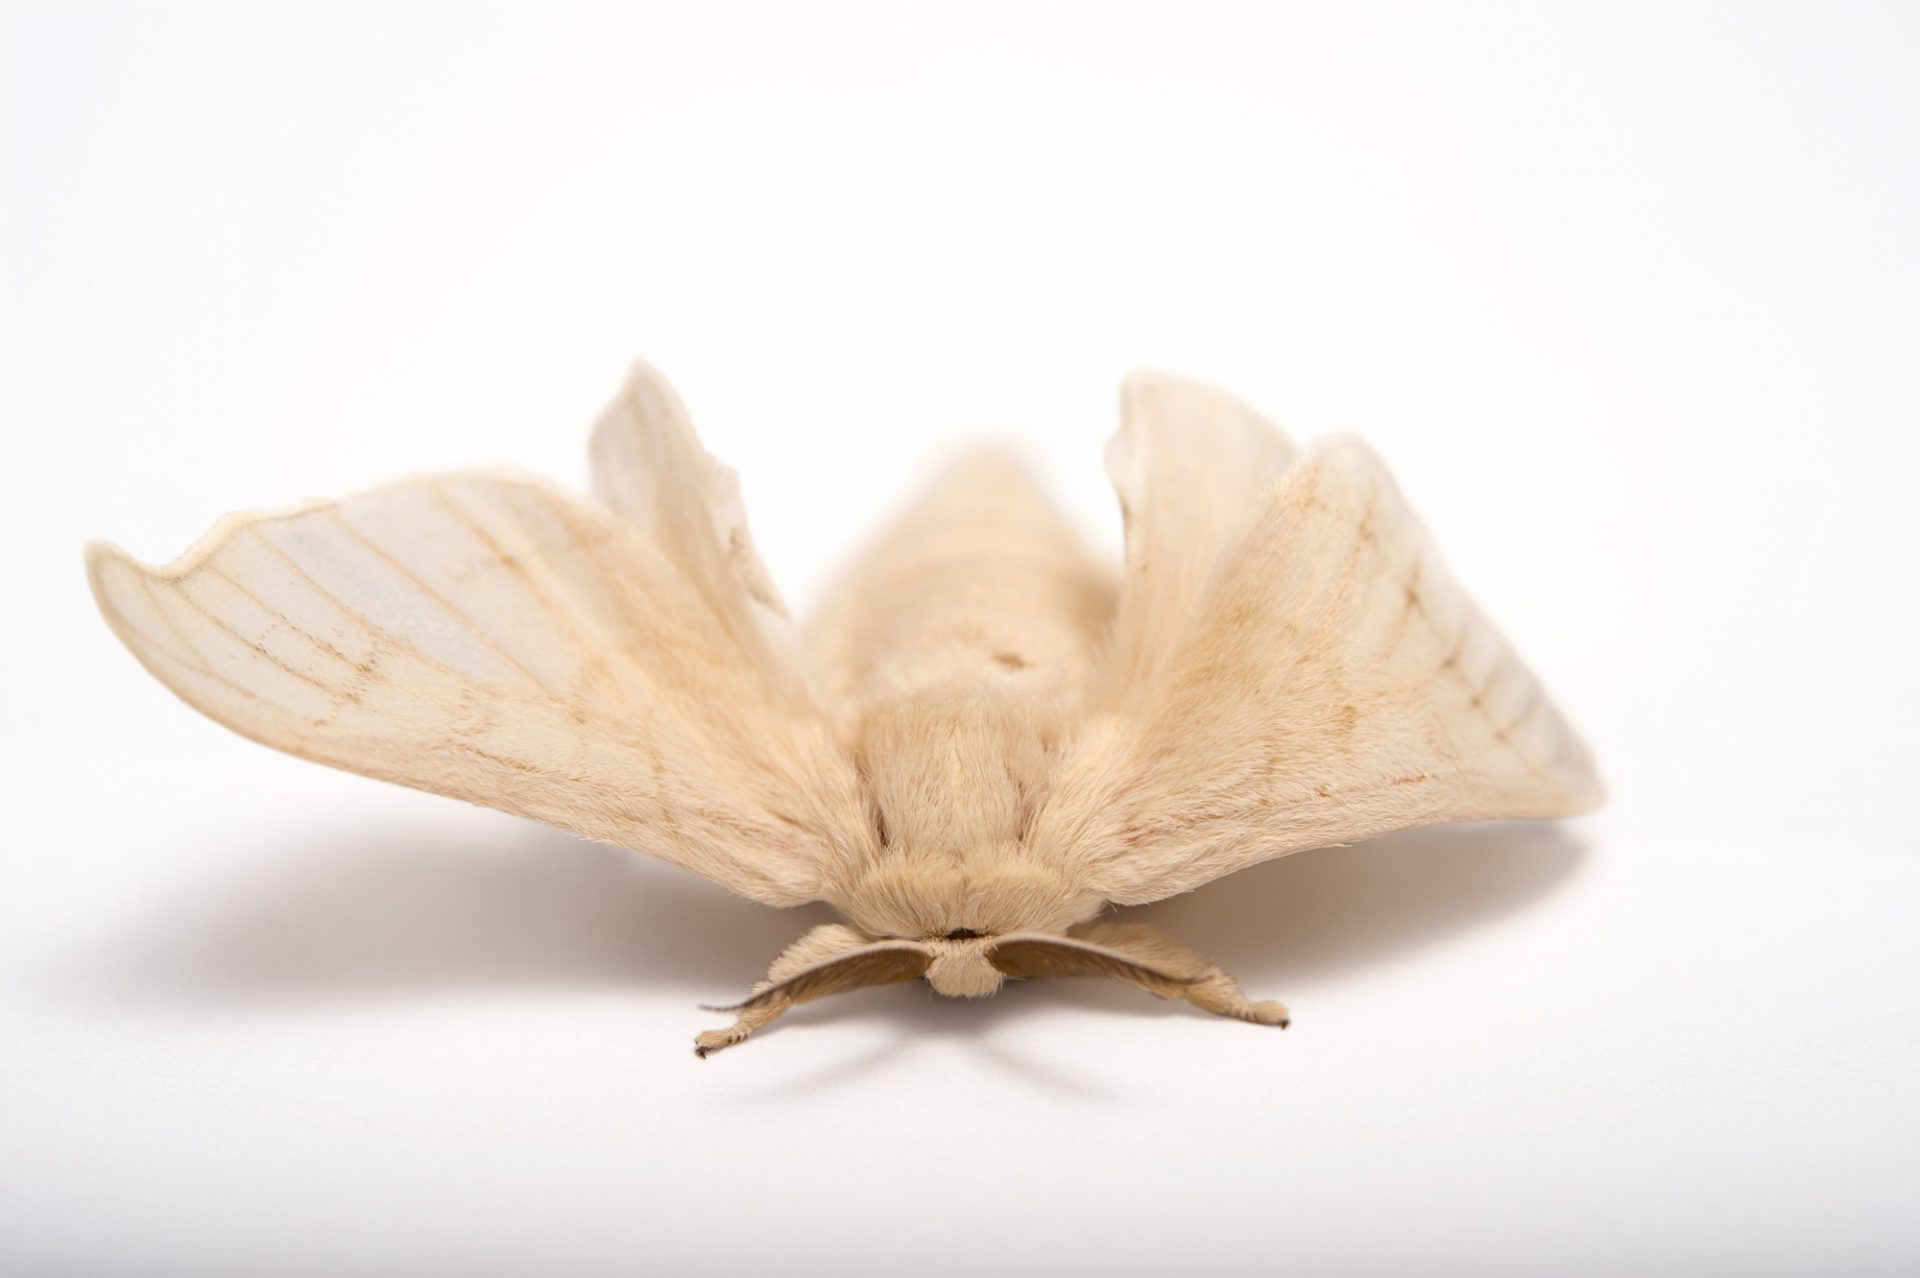 Picture of a silkworm moth (Bombyx mori) at the St. Louis Zoo.